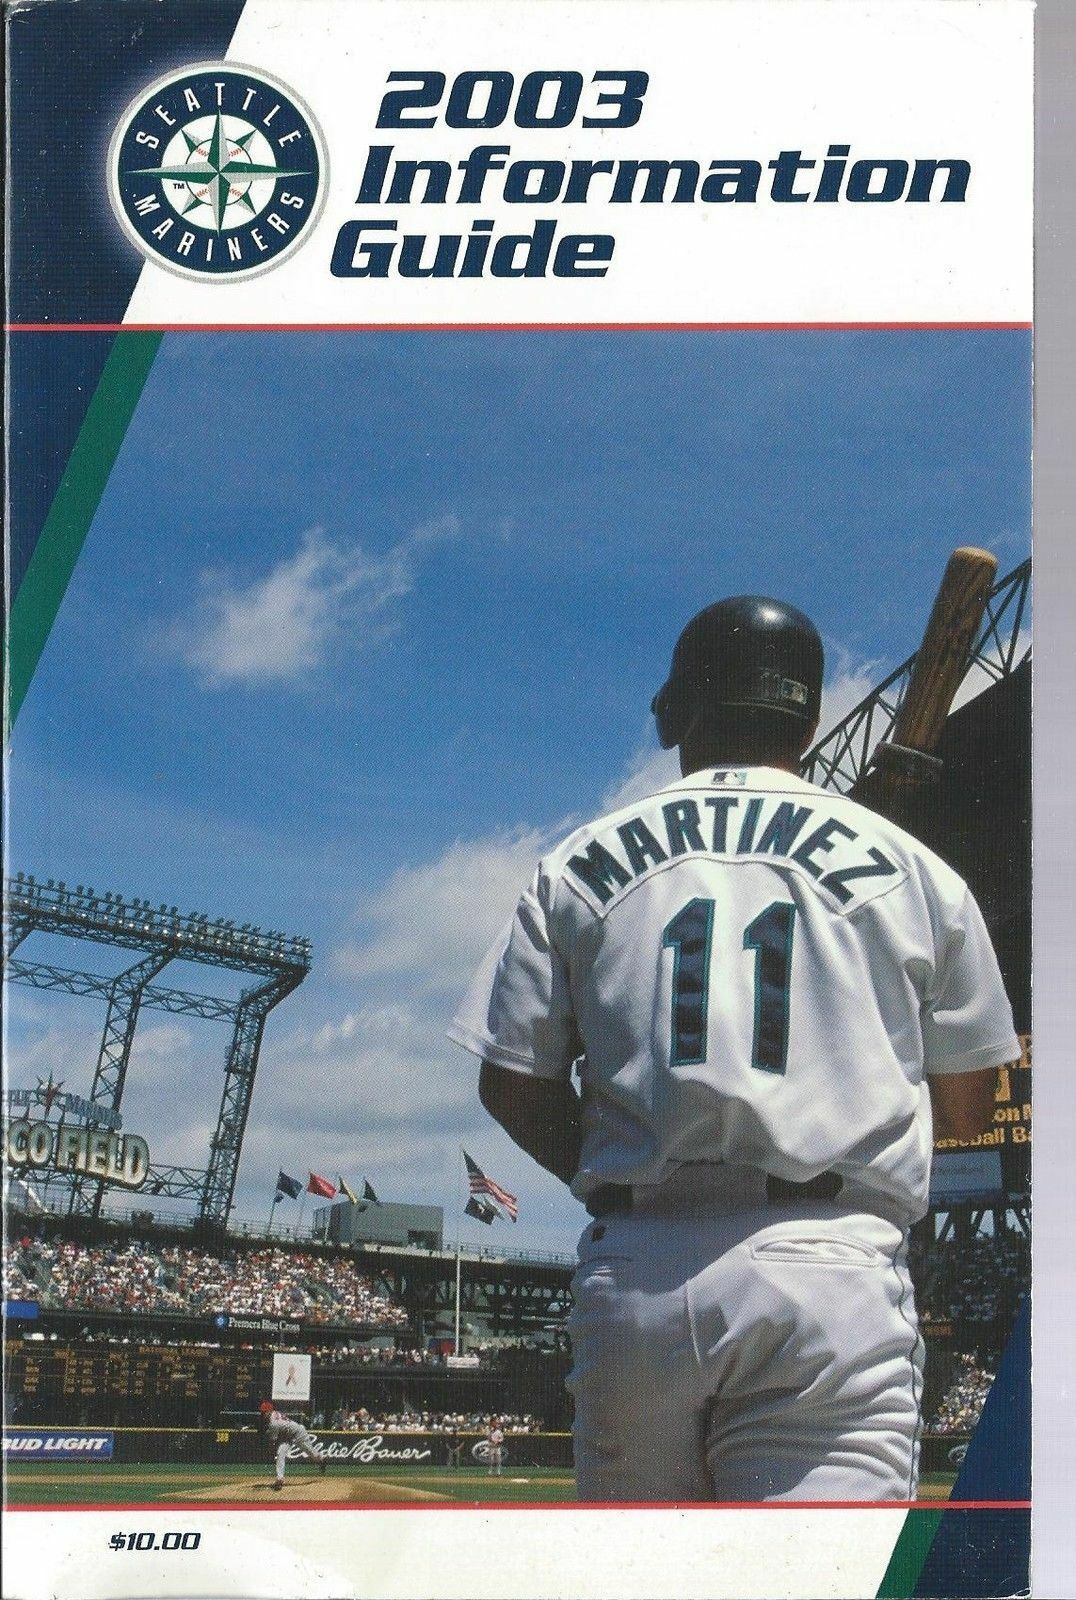 2003 Seattle Mariners Baseball MLB Media Guide - Annual Player Information